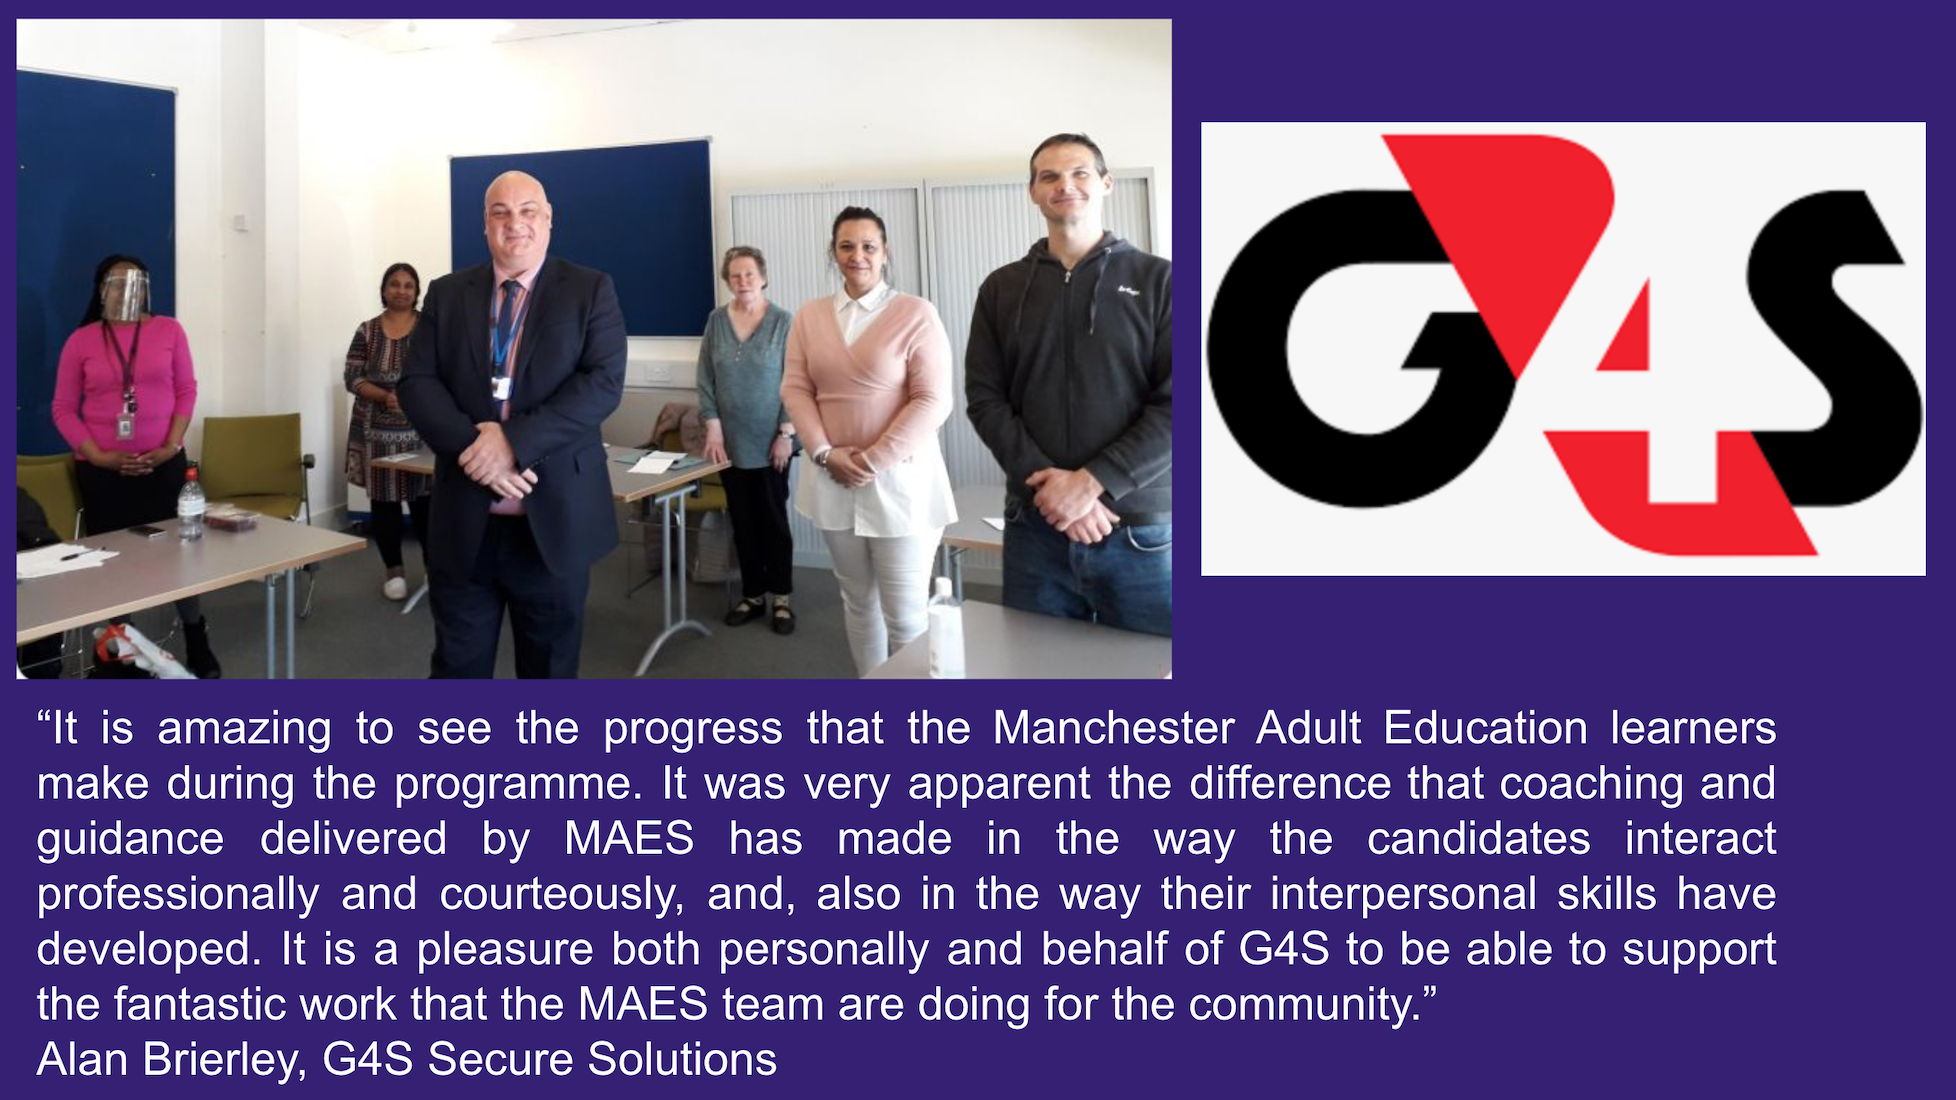 """A quote from Alan Brierley of G4S Secure Solutions: """"It is amazing to see the progress that the Manchester Adult Education learners make during the programme. It was very apparent the difference that coaching and guidance delivered by MAES has made in the way the candidates interact professionally and courteously, and, also in the way their interpersonal skills have developed. It is a pleasure both personally and behalf of G4S to be able to support the fantastic work that the MAES team are doing for the community.""""  Alan Brierley, G4S Secure Solutions"""